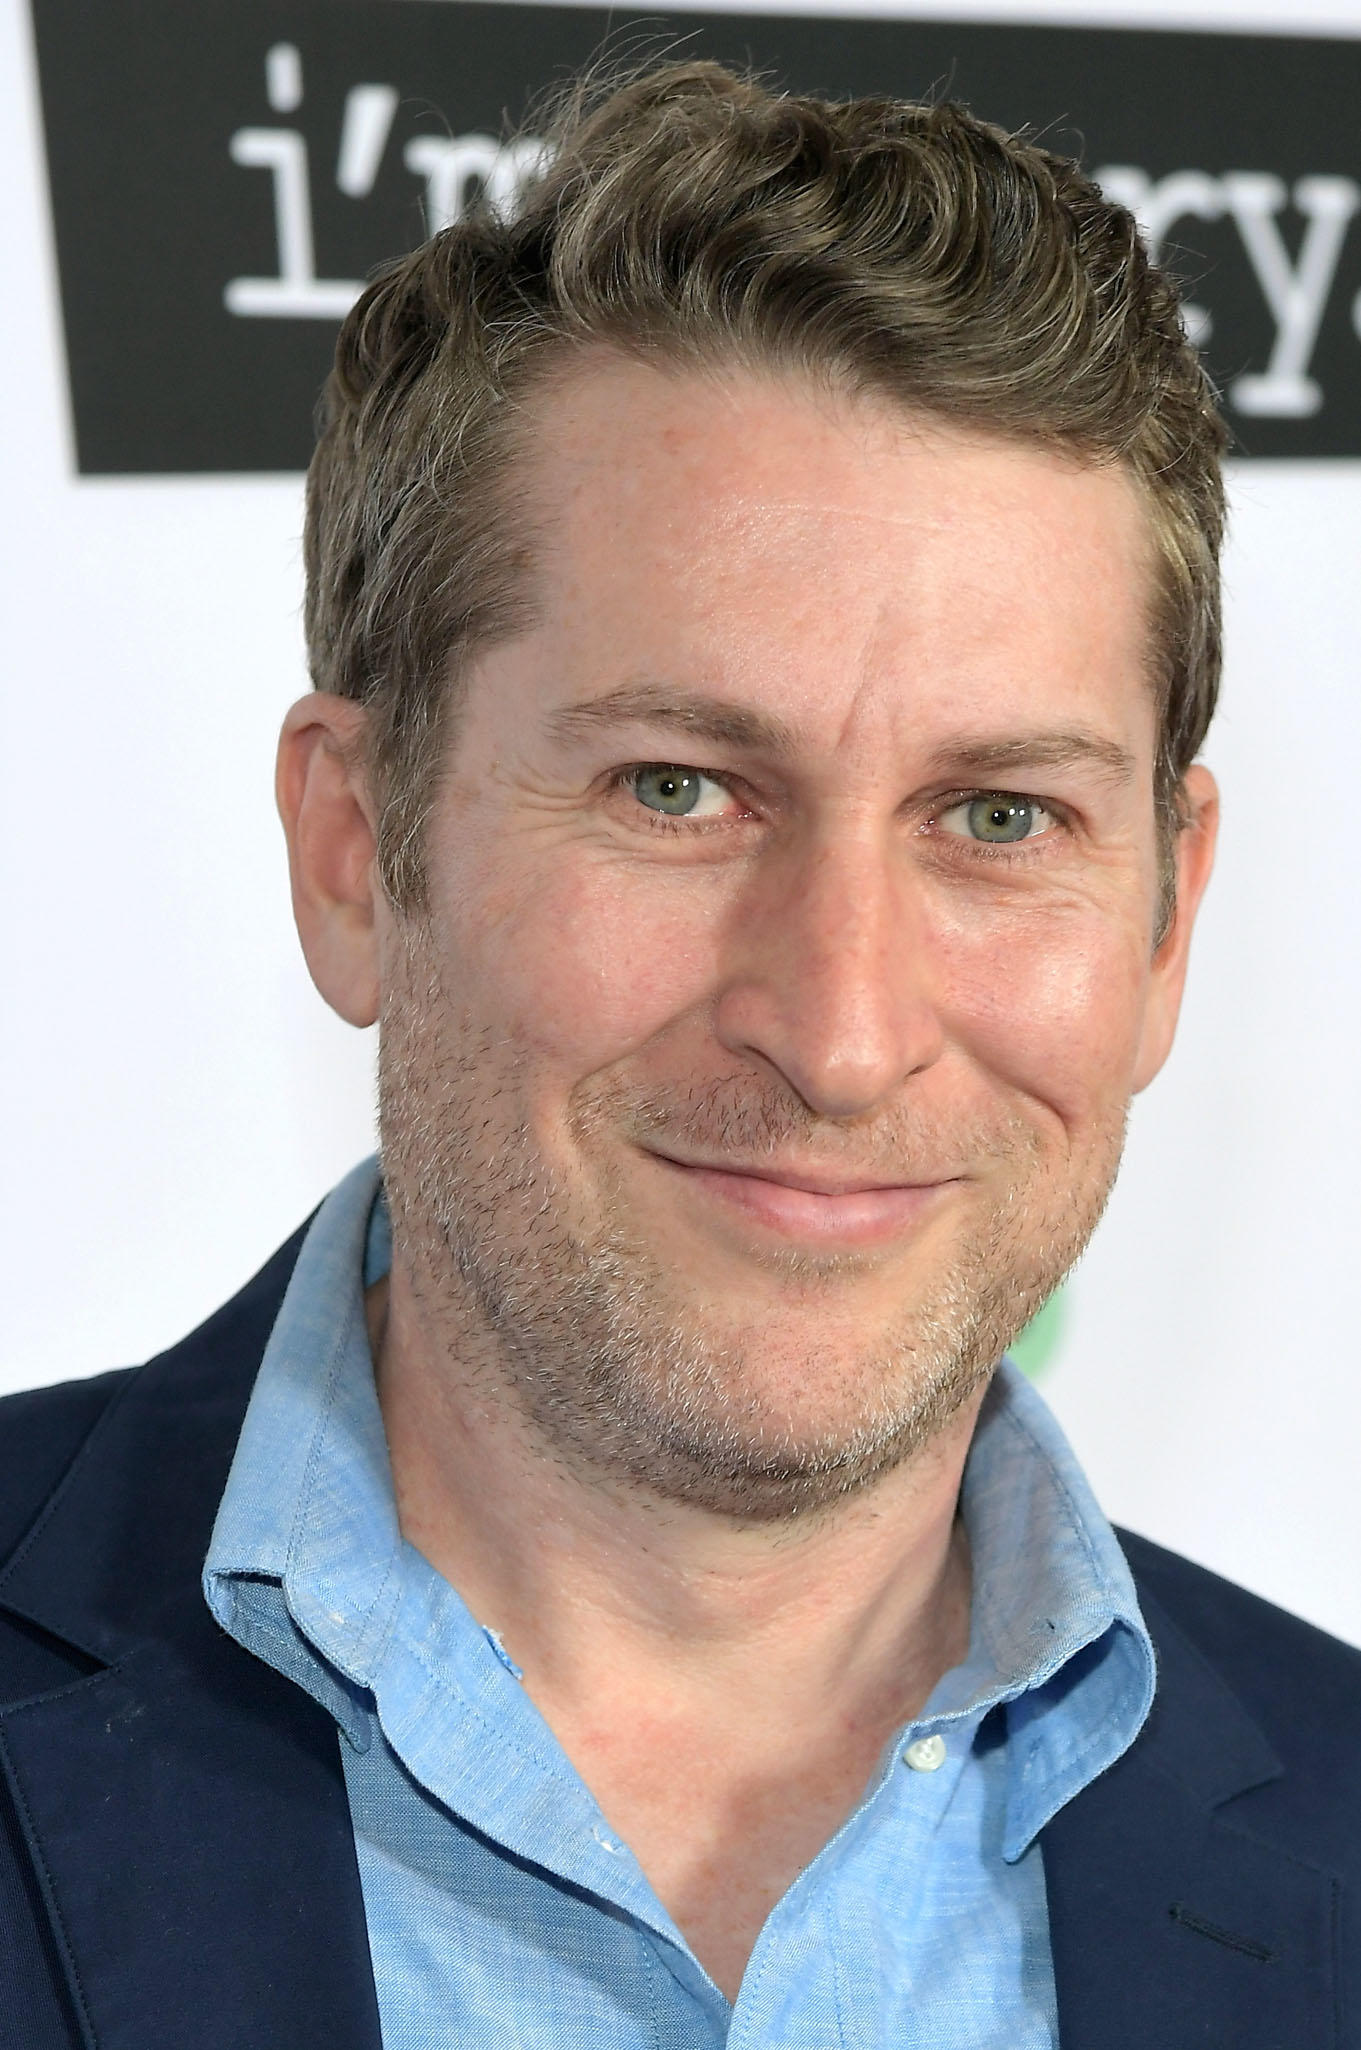 Scott Aukerman at the premiere screening of truTV's